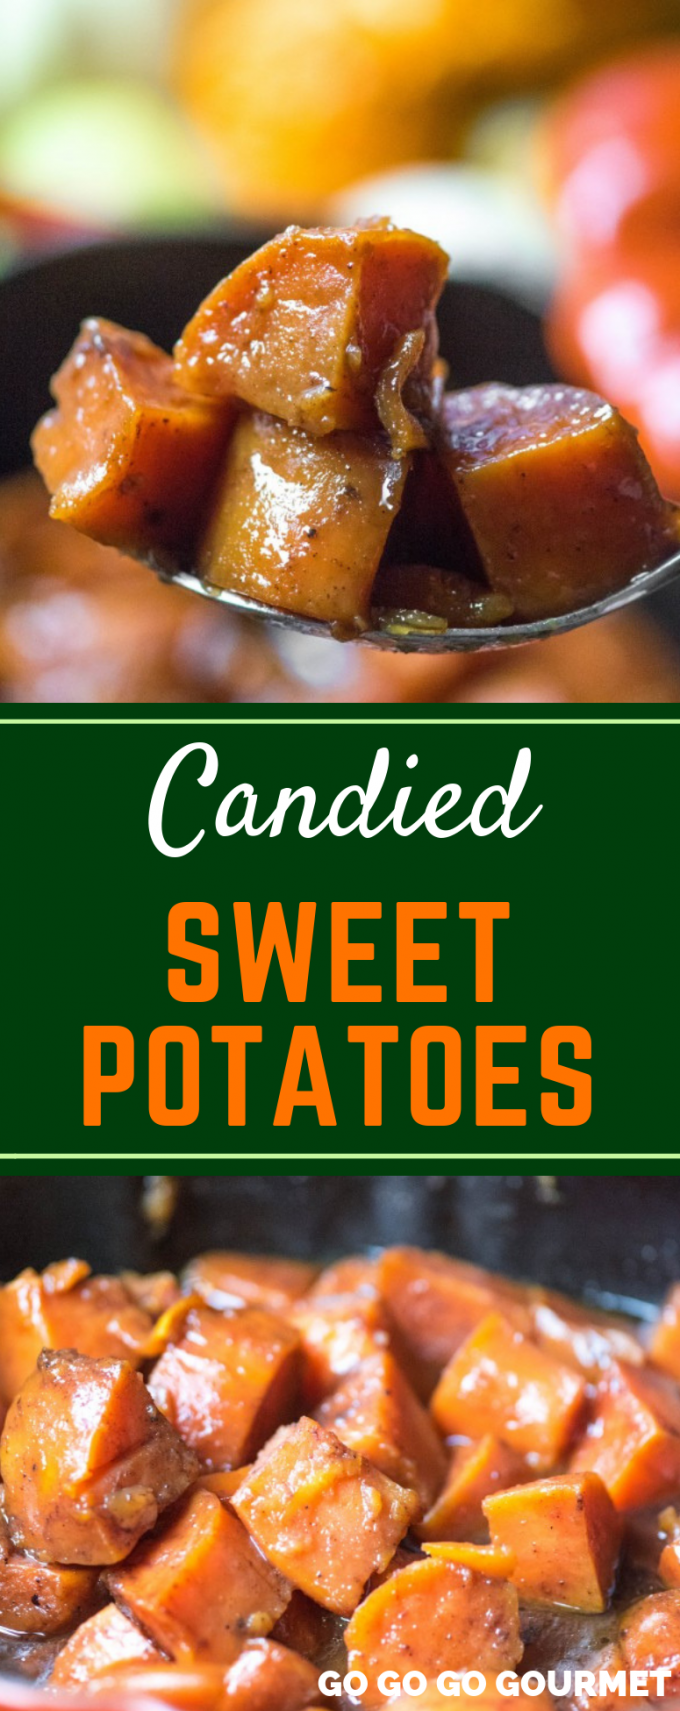 This is one of the best, easy Candied Sweet Potatoes recipes! Baked to perfection in the oven, it makes the perfect side dish for Thanksgiving! Forget the sweet potato casserole topped with marshmallows, this dish is made sweet with plenty of brown sugar. It would even taste great with pecans! #gogogogourmet #candiedsweetpotatoes #thanksgivingsidedishes #thanksgivingrecipes